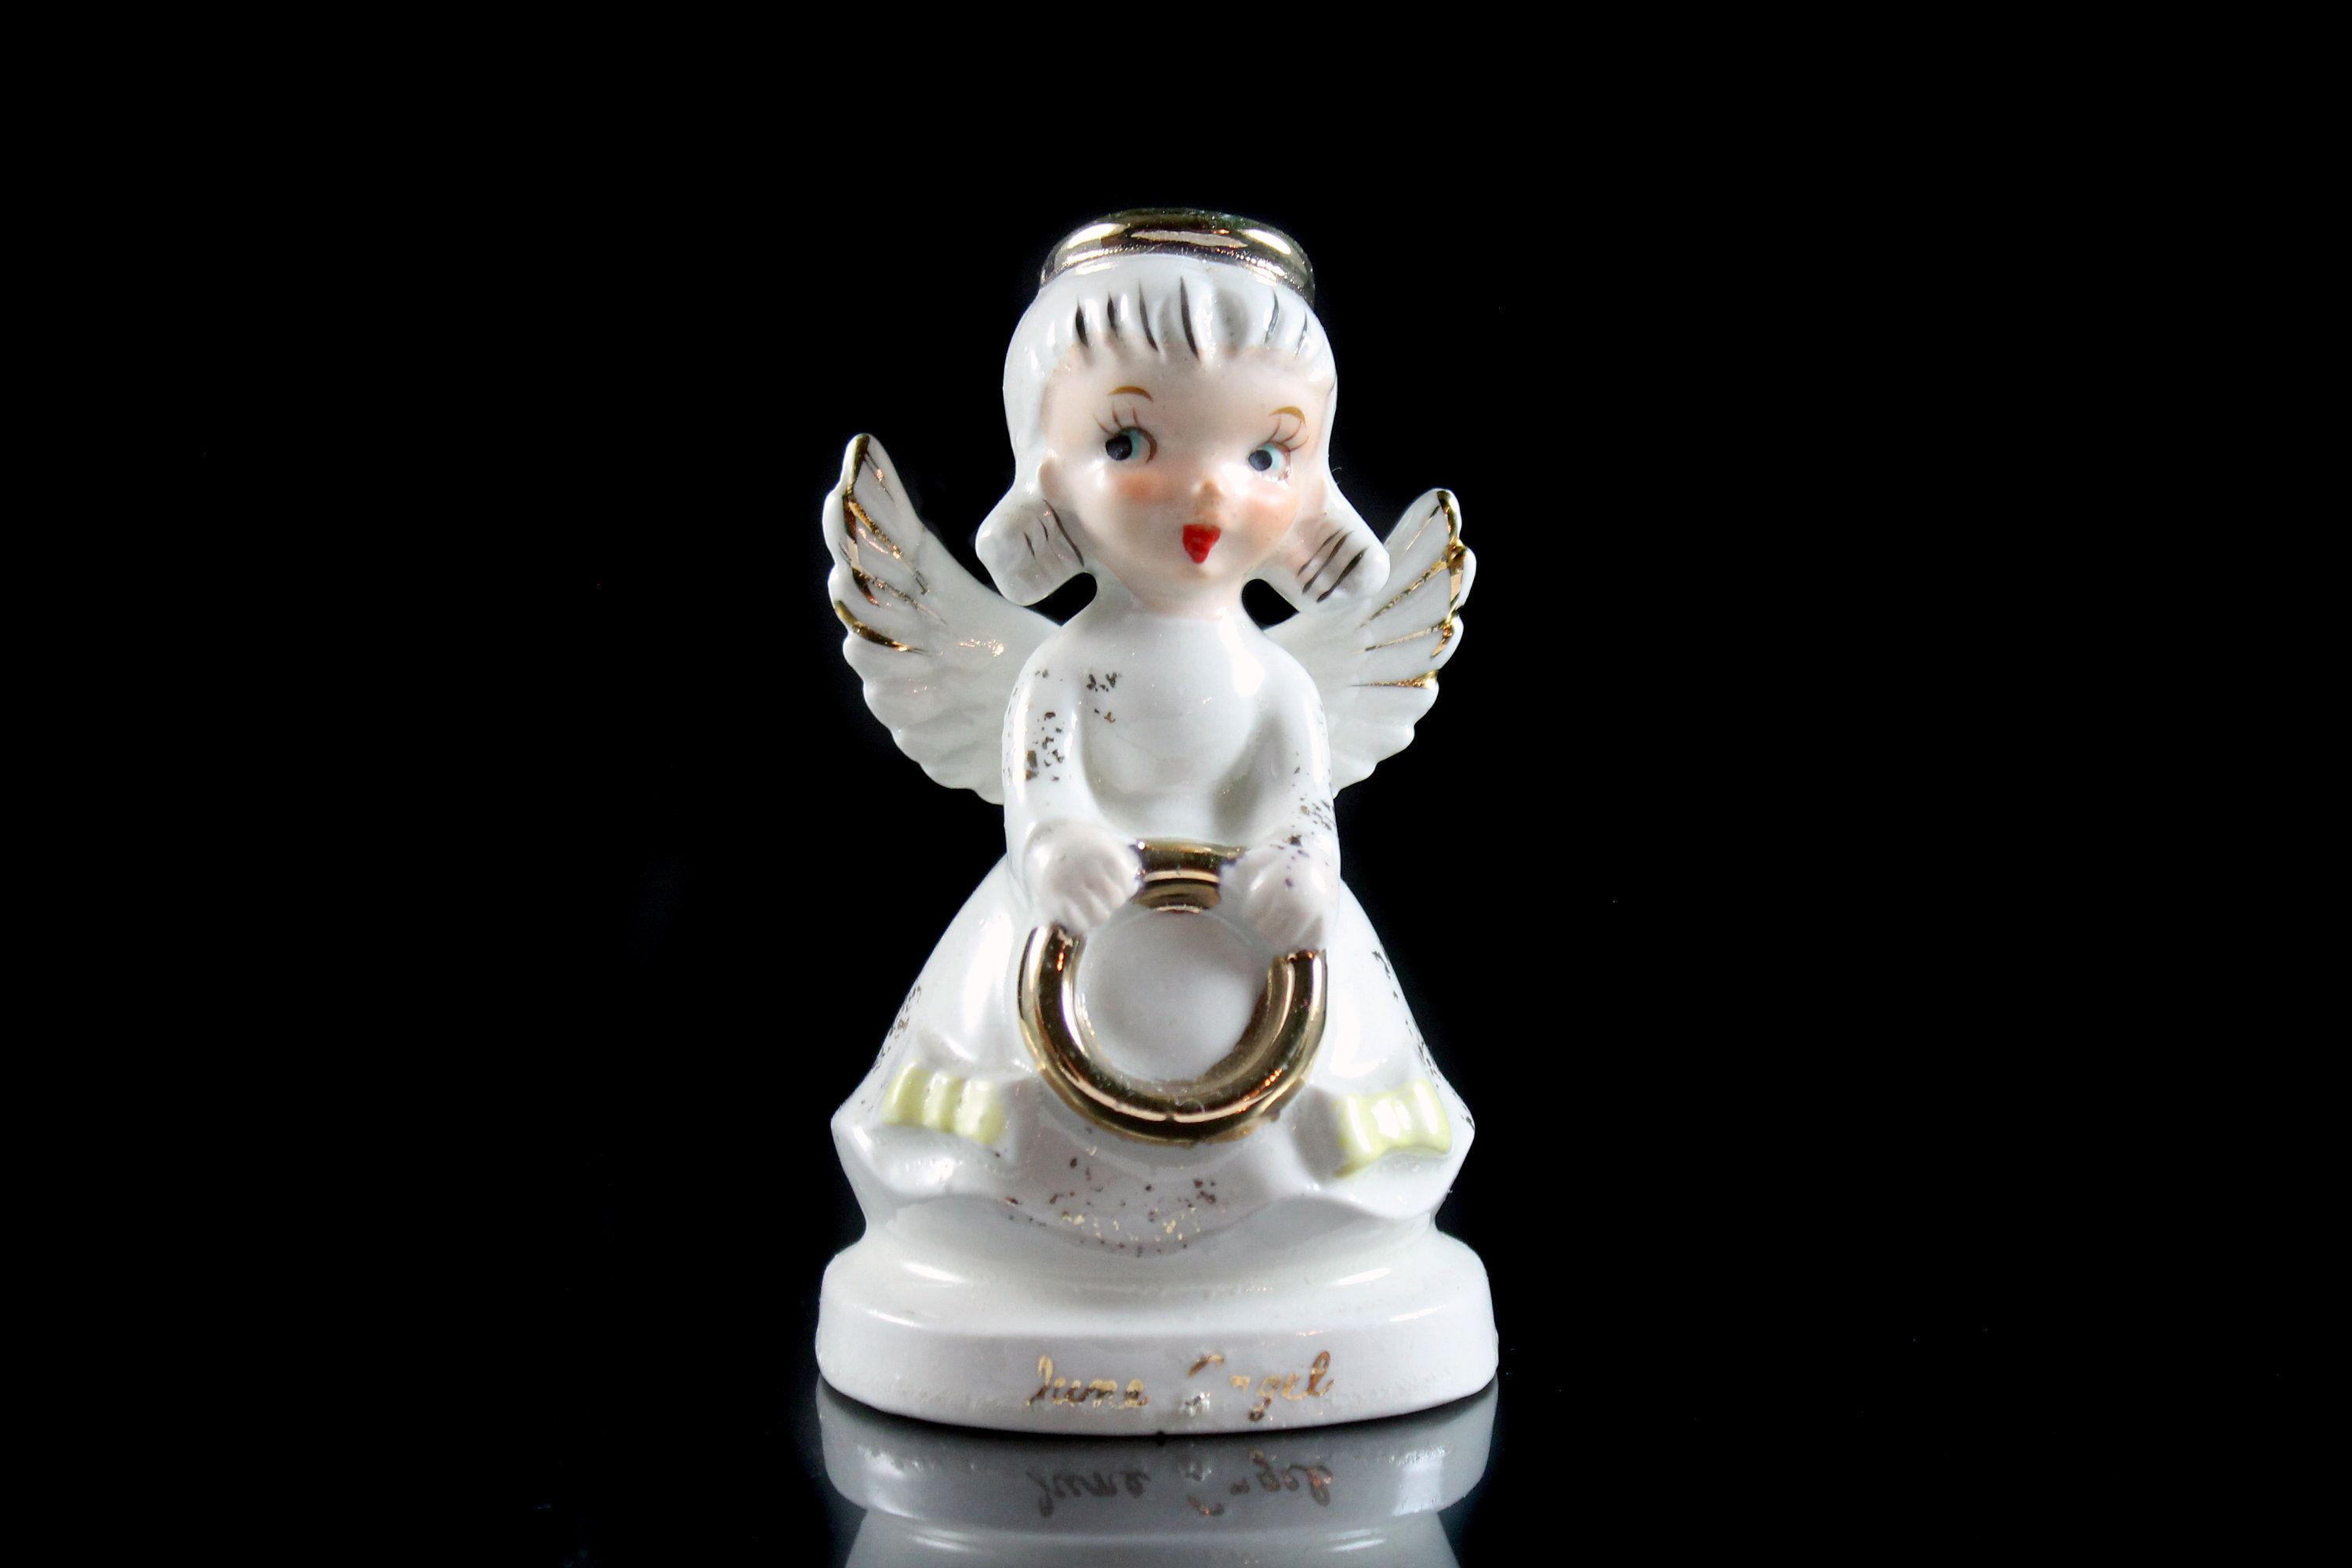 Angel Figurine, June Angel, Birthday Month, Collectible, Porcelain, Angel with Bouquet, Artmark #birthdaymonth